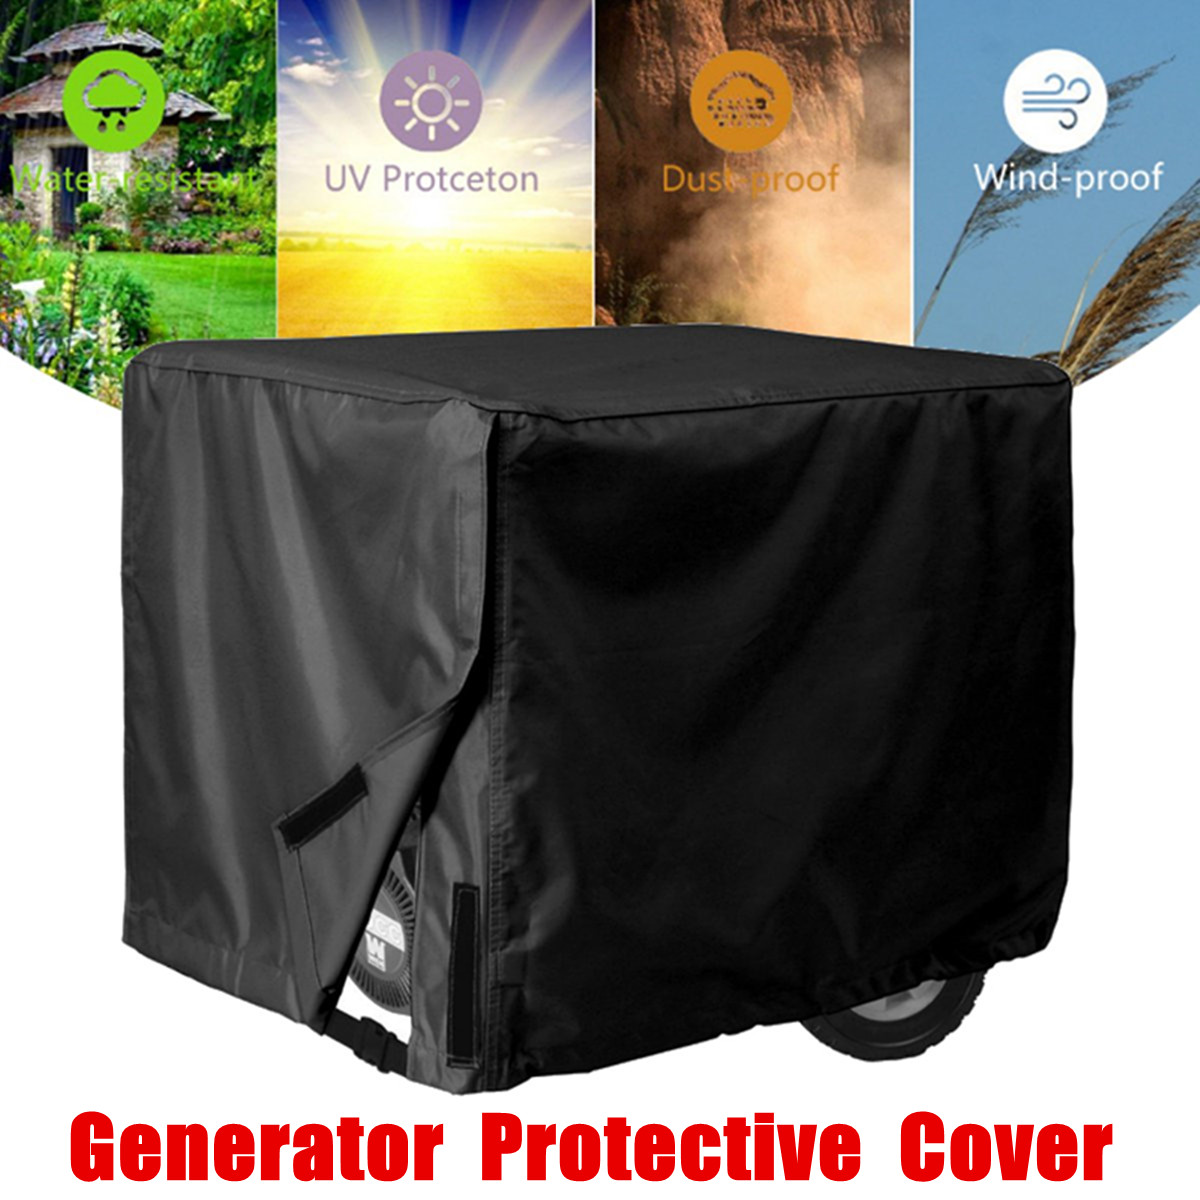 Black Generator Cover Windproof Protective Cover Canopy Shelter Waterproof Oxford Cloth All-Purpose Covers Accessories 3 Sizes